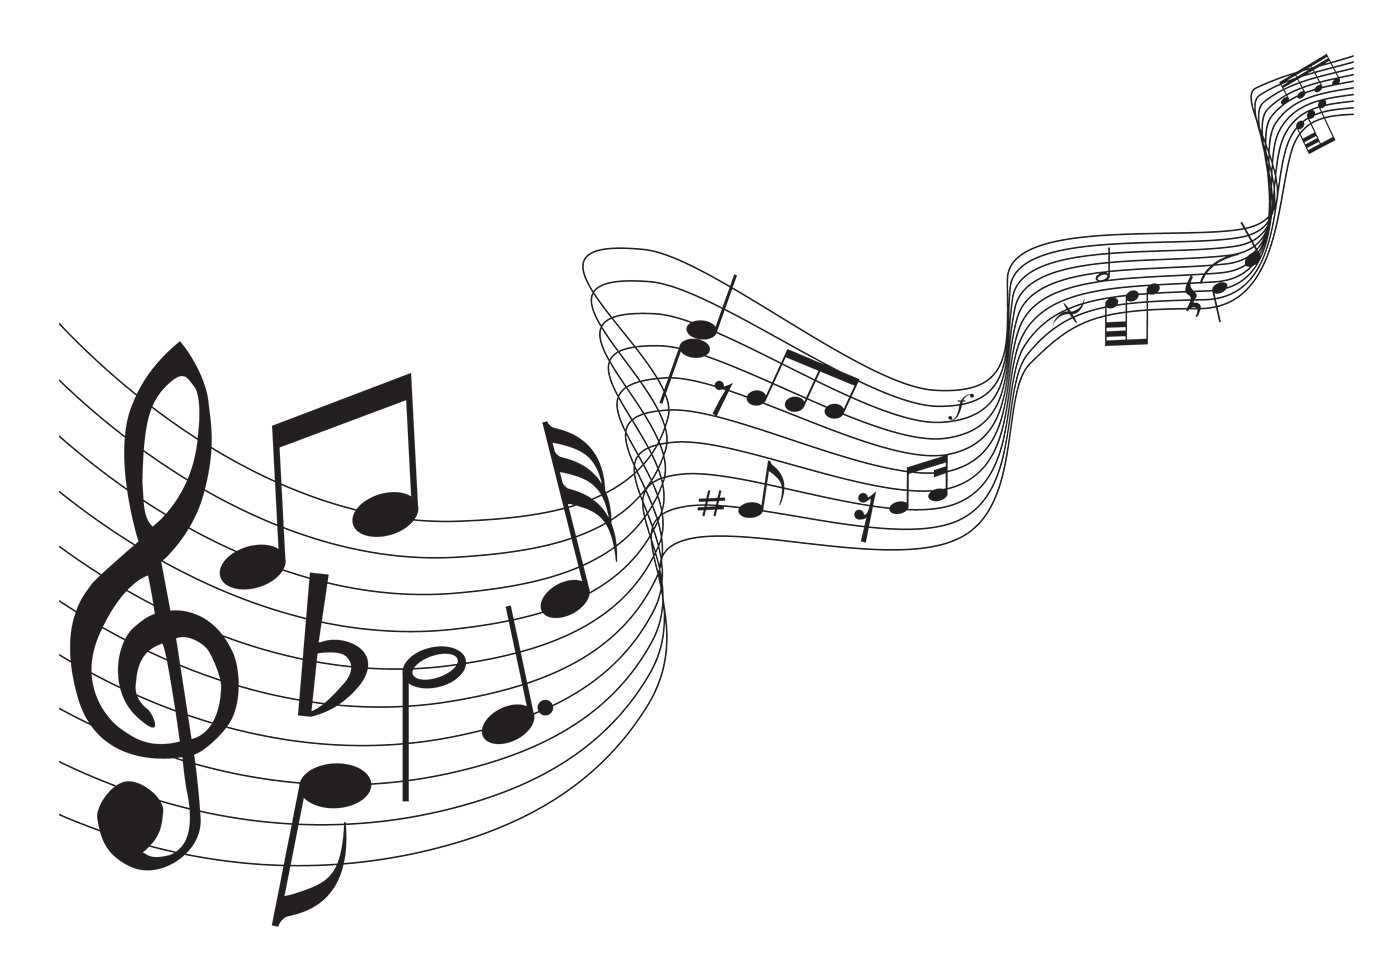 It's just a graphic of Punchy Printable Music Notation